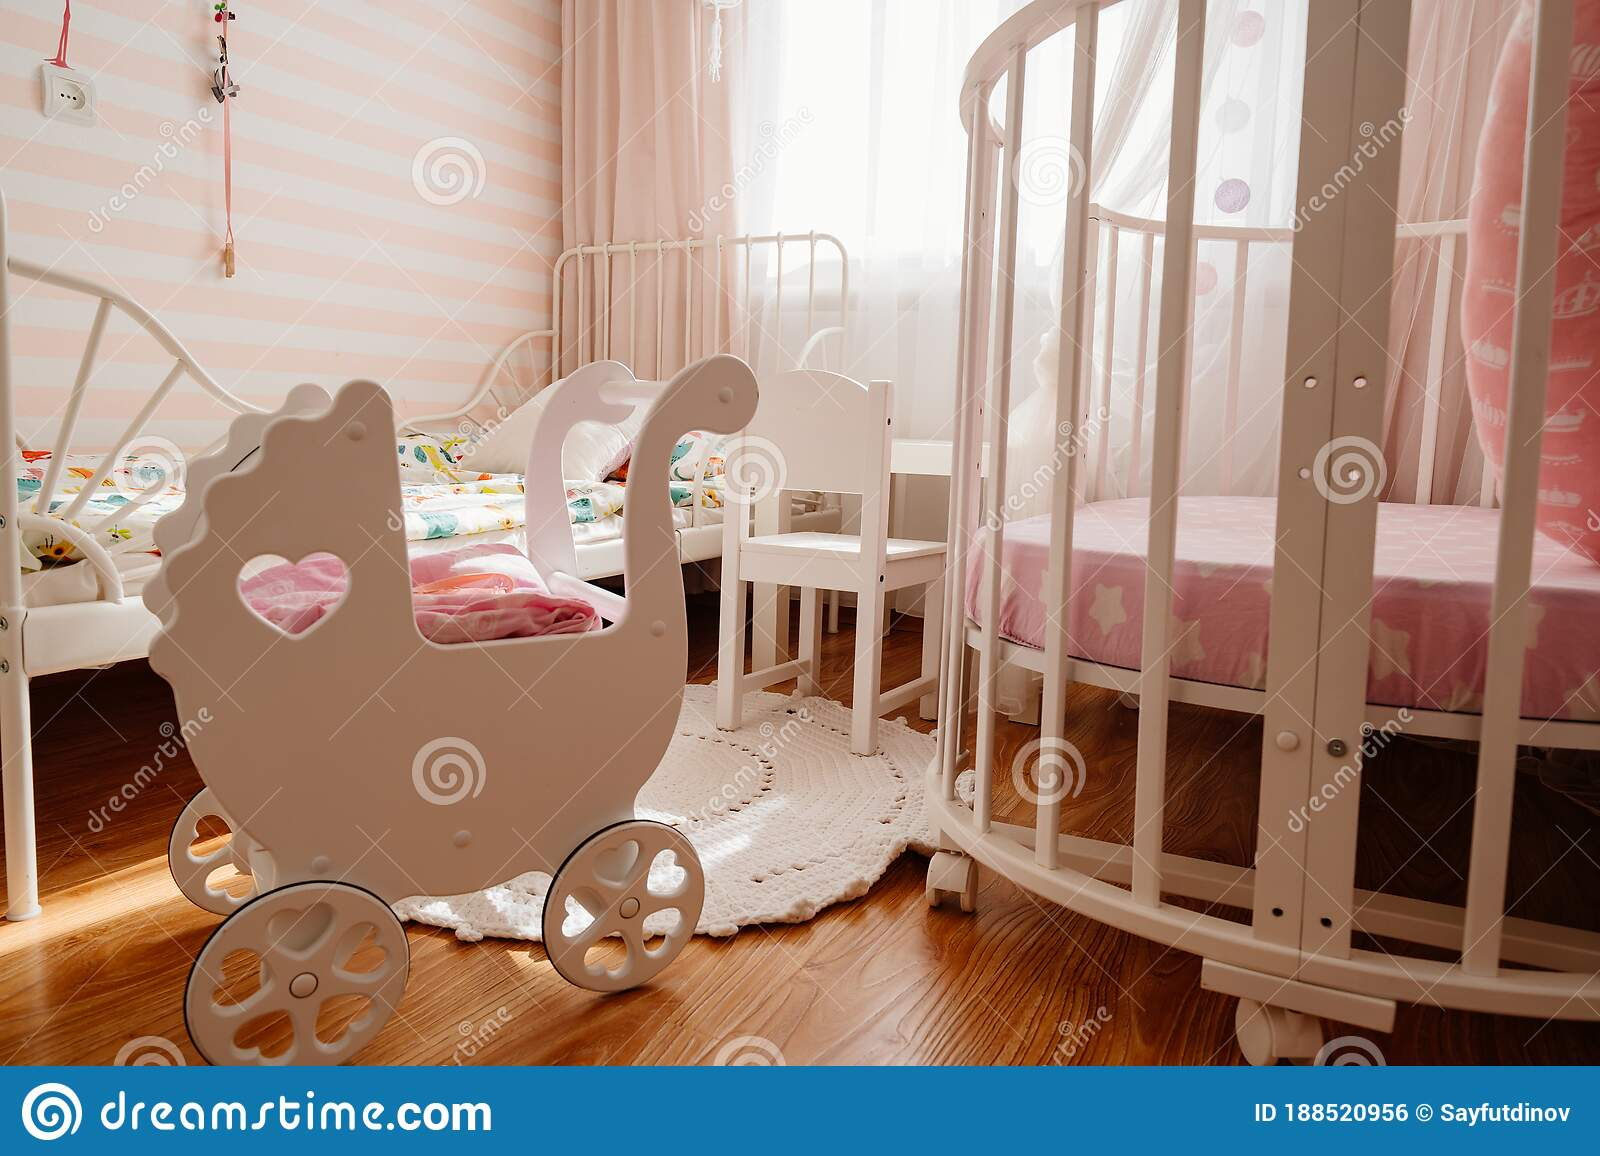 Picture of: Beautiful Little Cosy White Kids Room With Two Beds For Girls Kids Stock Photo Image Of Beds Apartment 188520956